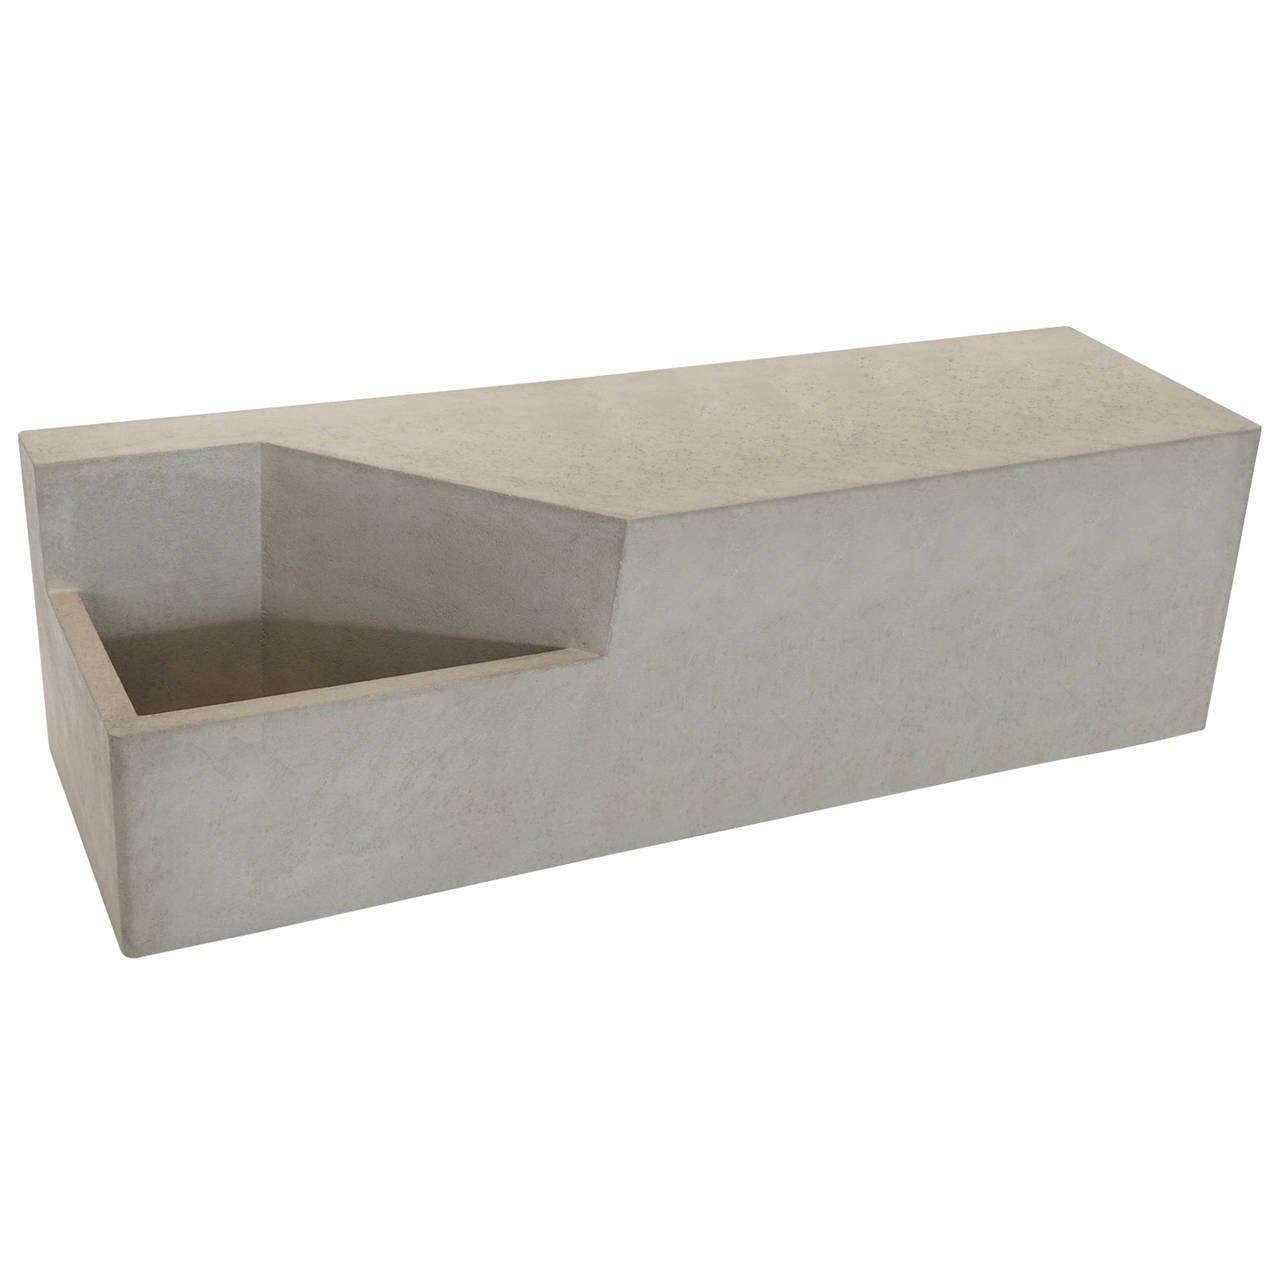 Modern Concrete Benches: Scarpa II Cast Concrete Bench Or Planter At 1stdibs